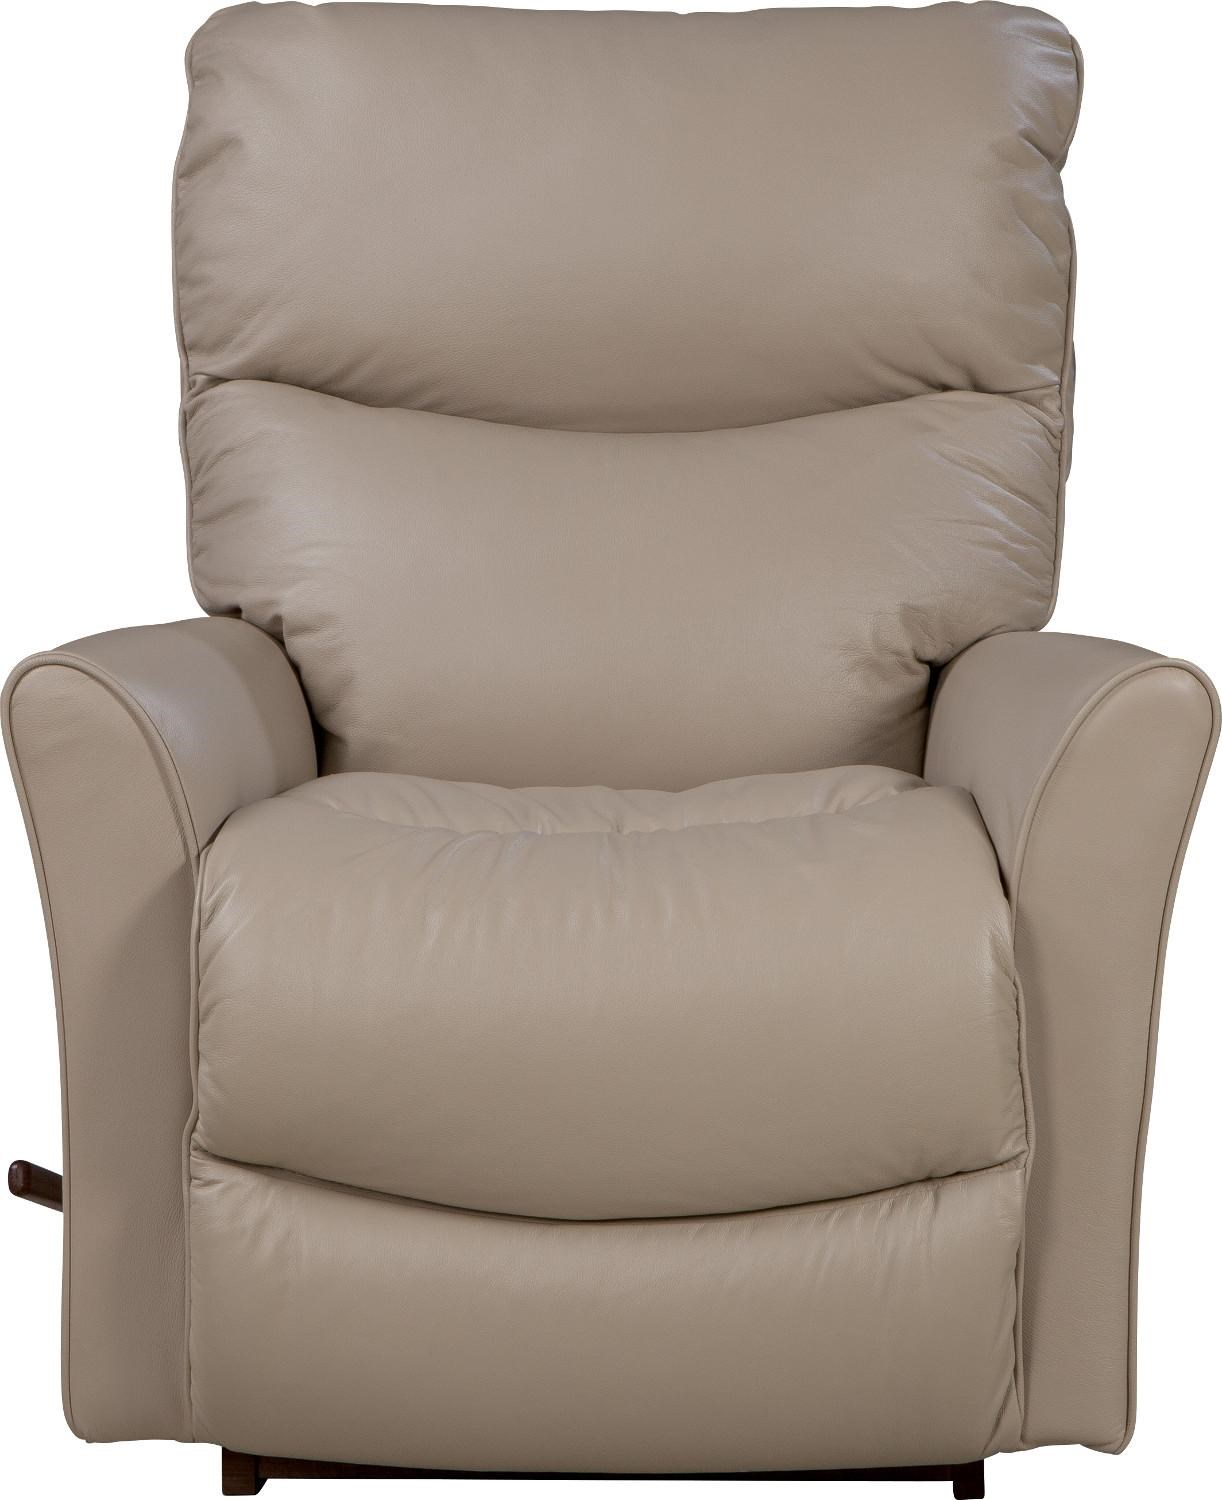 La-Z-Boy Recliners Rowan Small Scale RECLINA-ROCKER® Recliner with Flared Arms - VanDrie Home Furnishings - Three Way Recliners  sc 1 st  VanDrie Home Furnishings & La-Z-Boy Recliners Rowan Small Scale RECLINA-ROCKER® Recliner with ... islam-shia.org